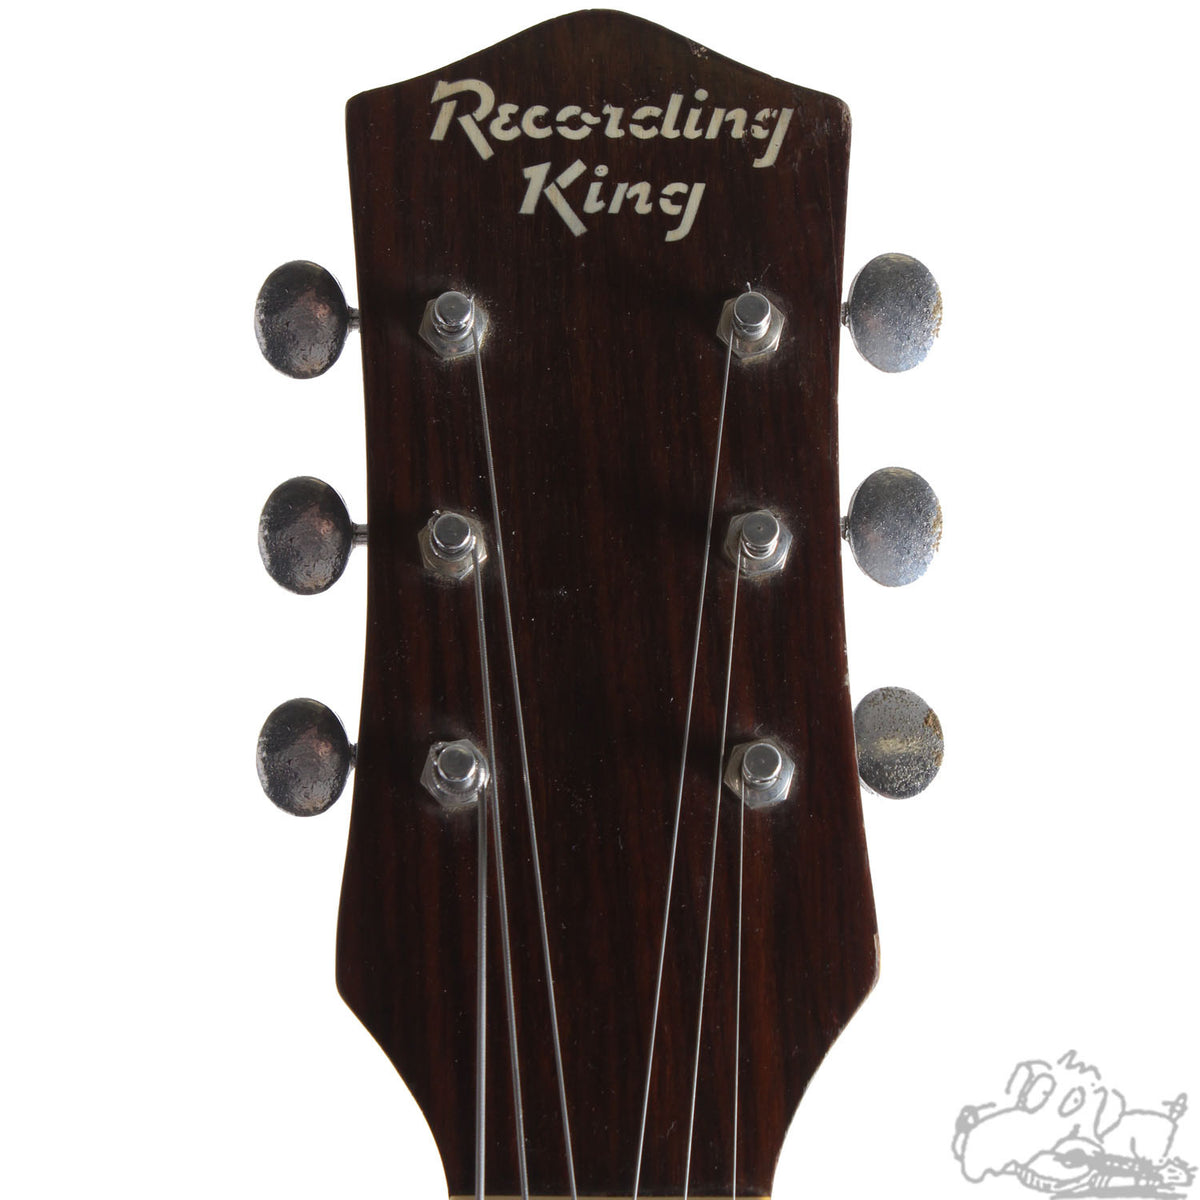 1930s Recording King by Regal